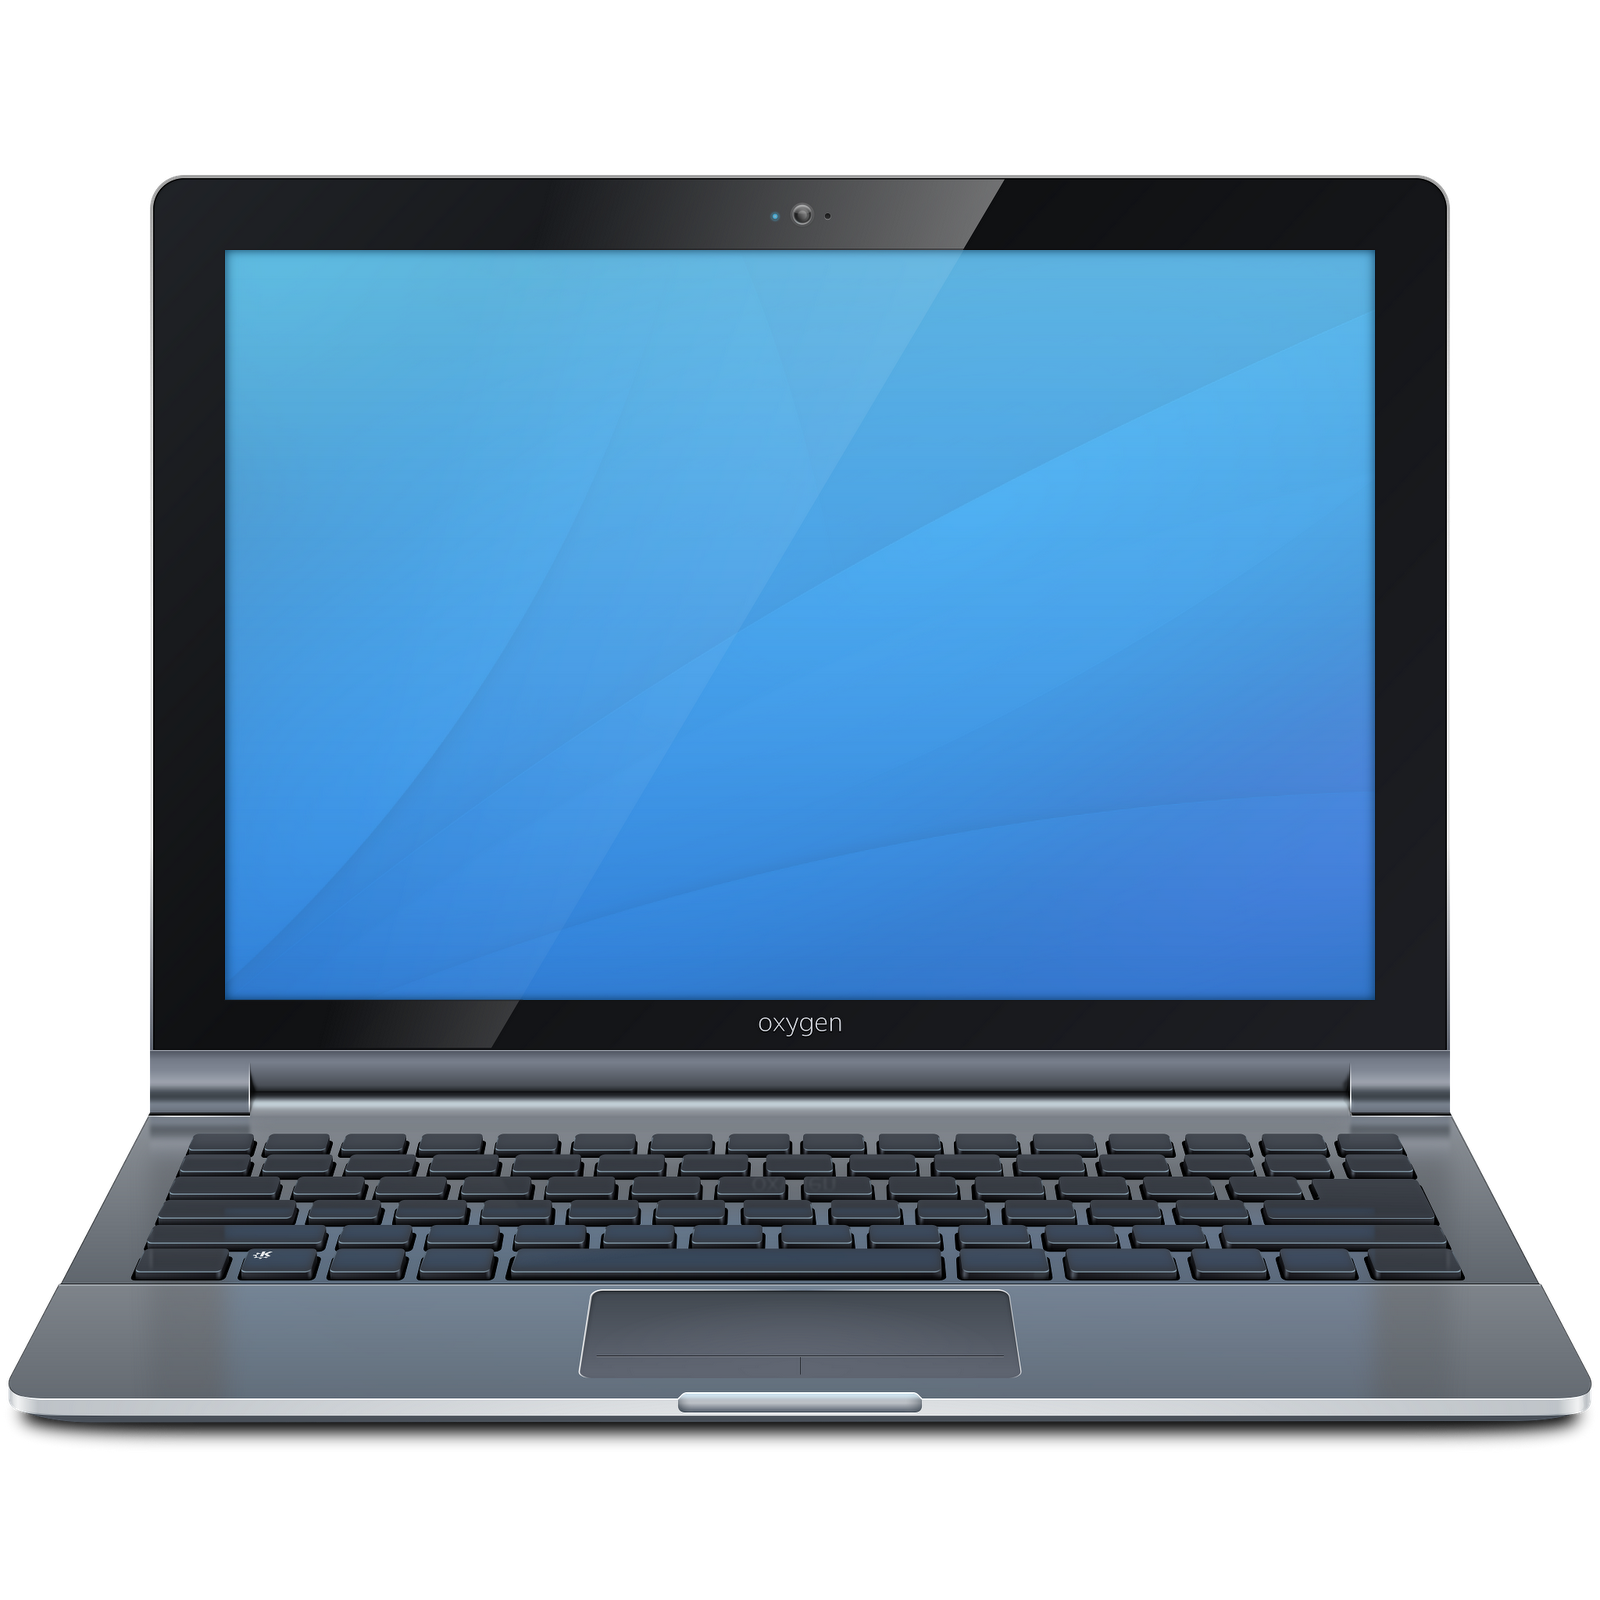 Laptop Icon Hd image #19515